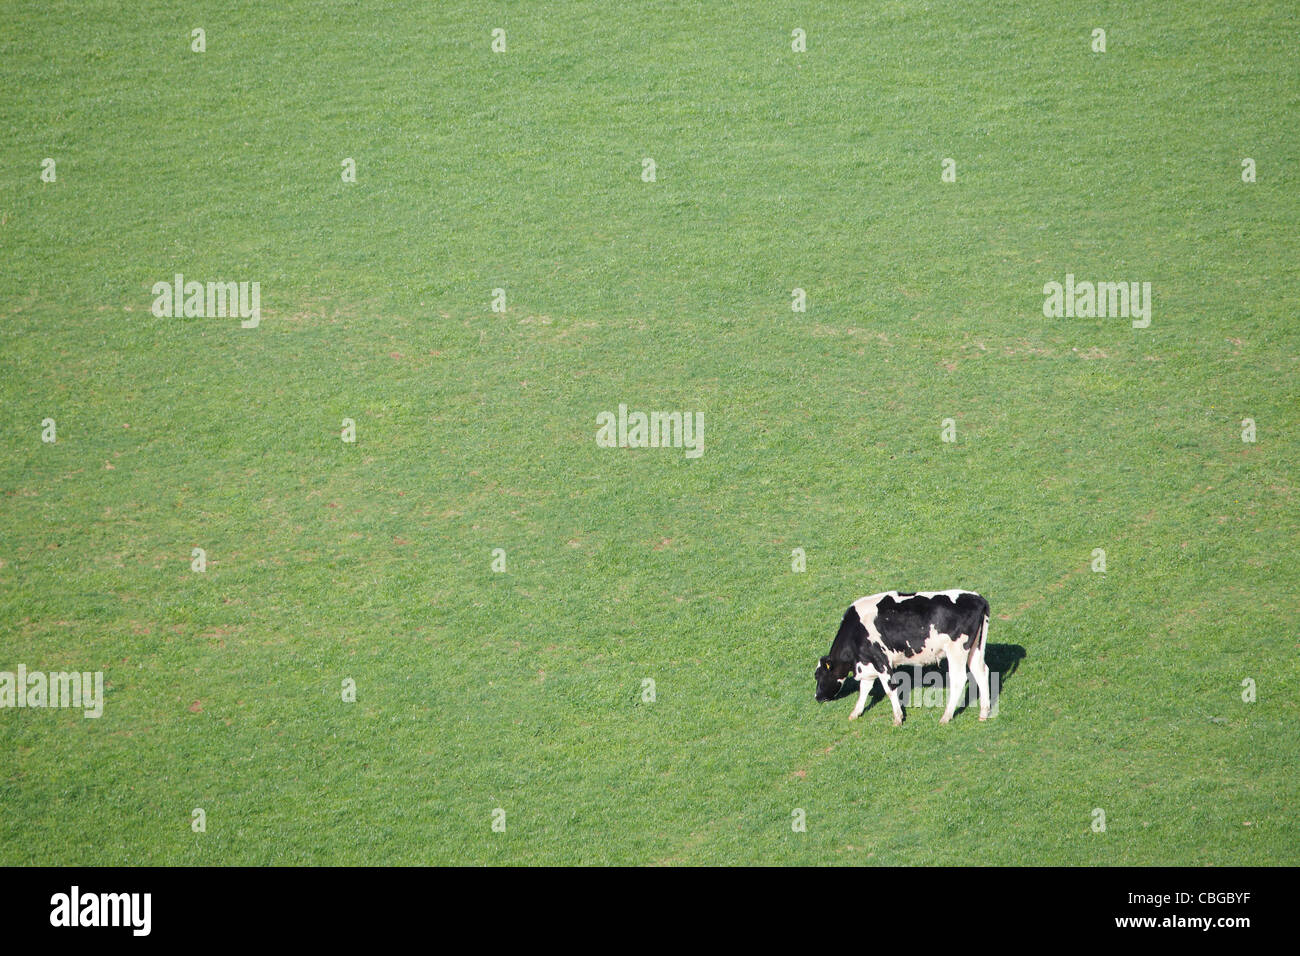 Cow grazing on a green grass background near Lazonby, Penrith, Eden Valley, Cumbria, England UK - Stock Image